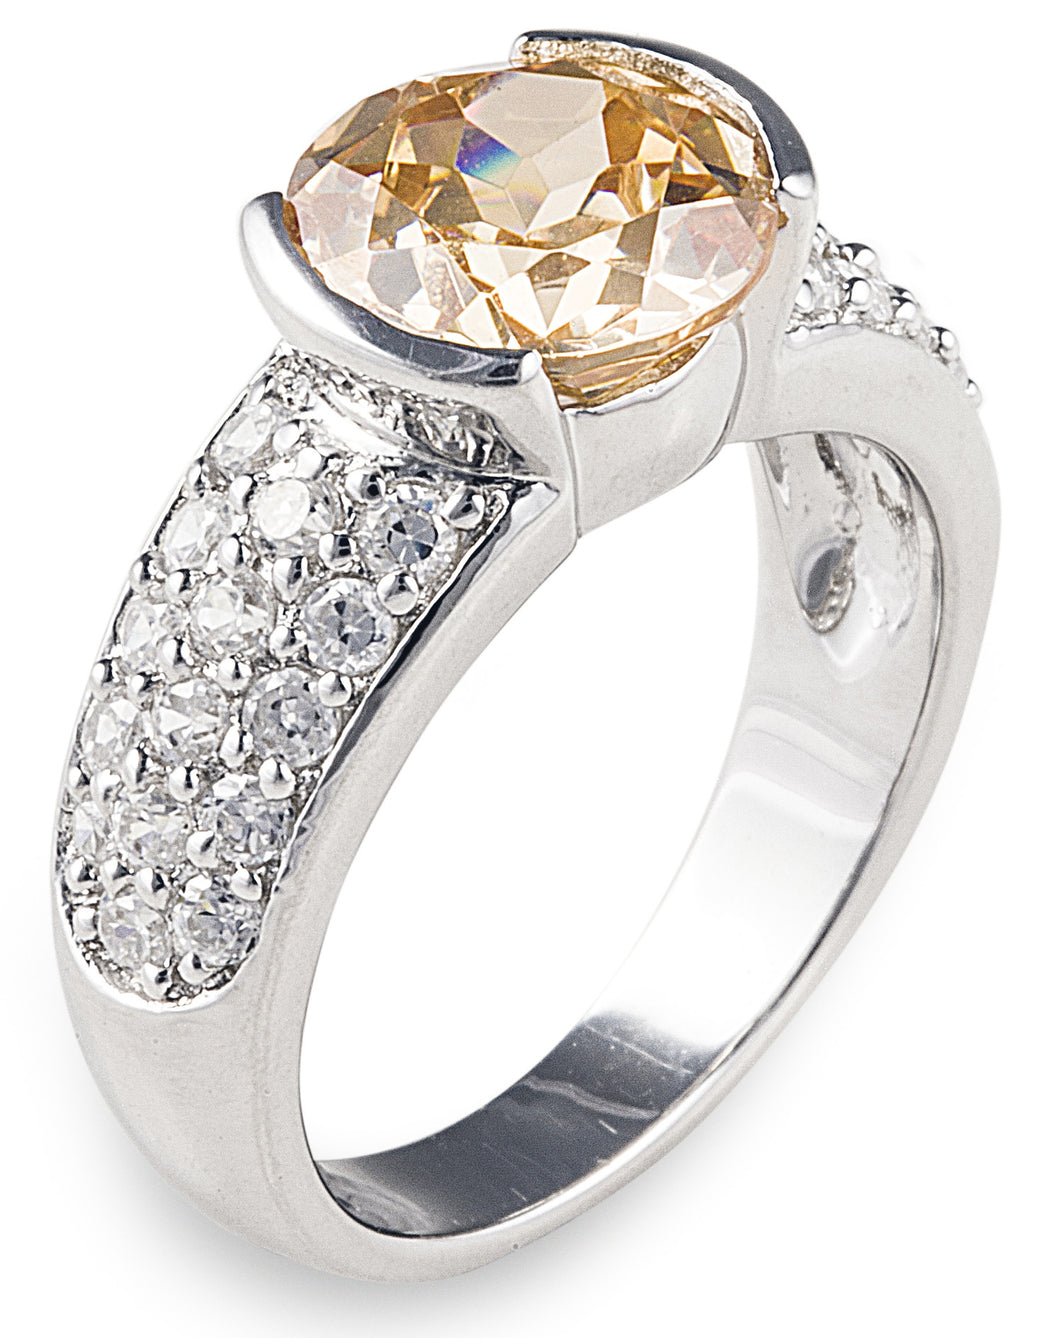 designer, bling, diamonds, pave, cubic zirconia, amber, champagne, wedding, engagement, sunset engagement ring,